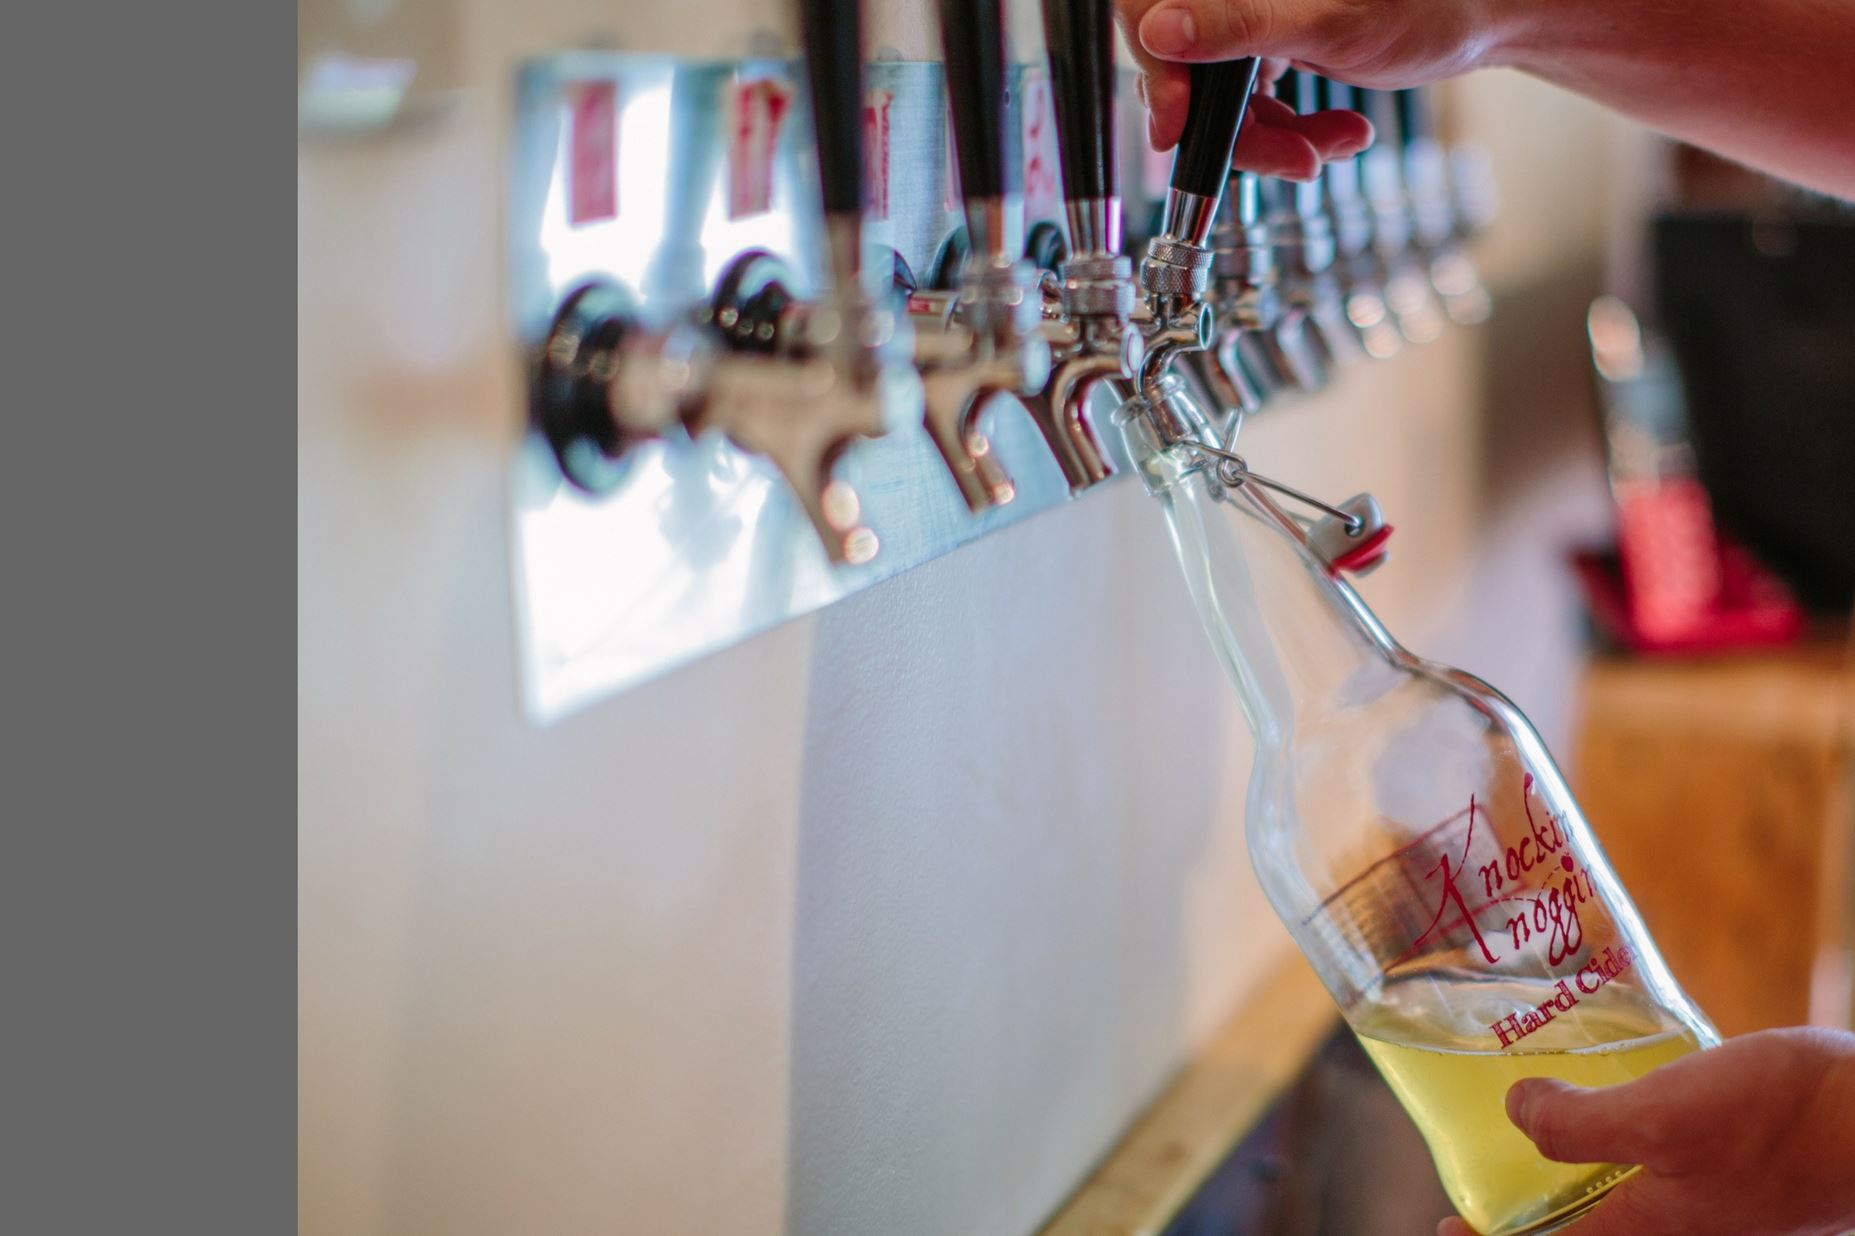 NSCider1205 A growler of cider is filled at Knockin' Noggin Cidery & Winery in Volant, Pa.